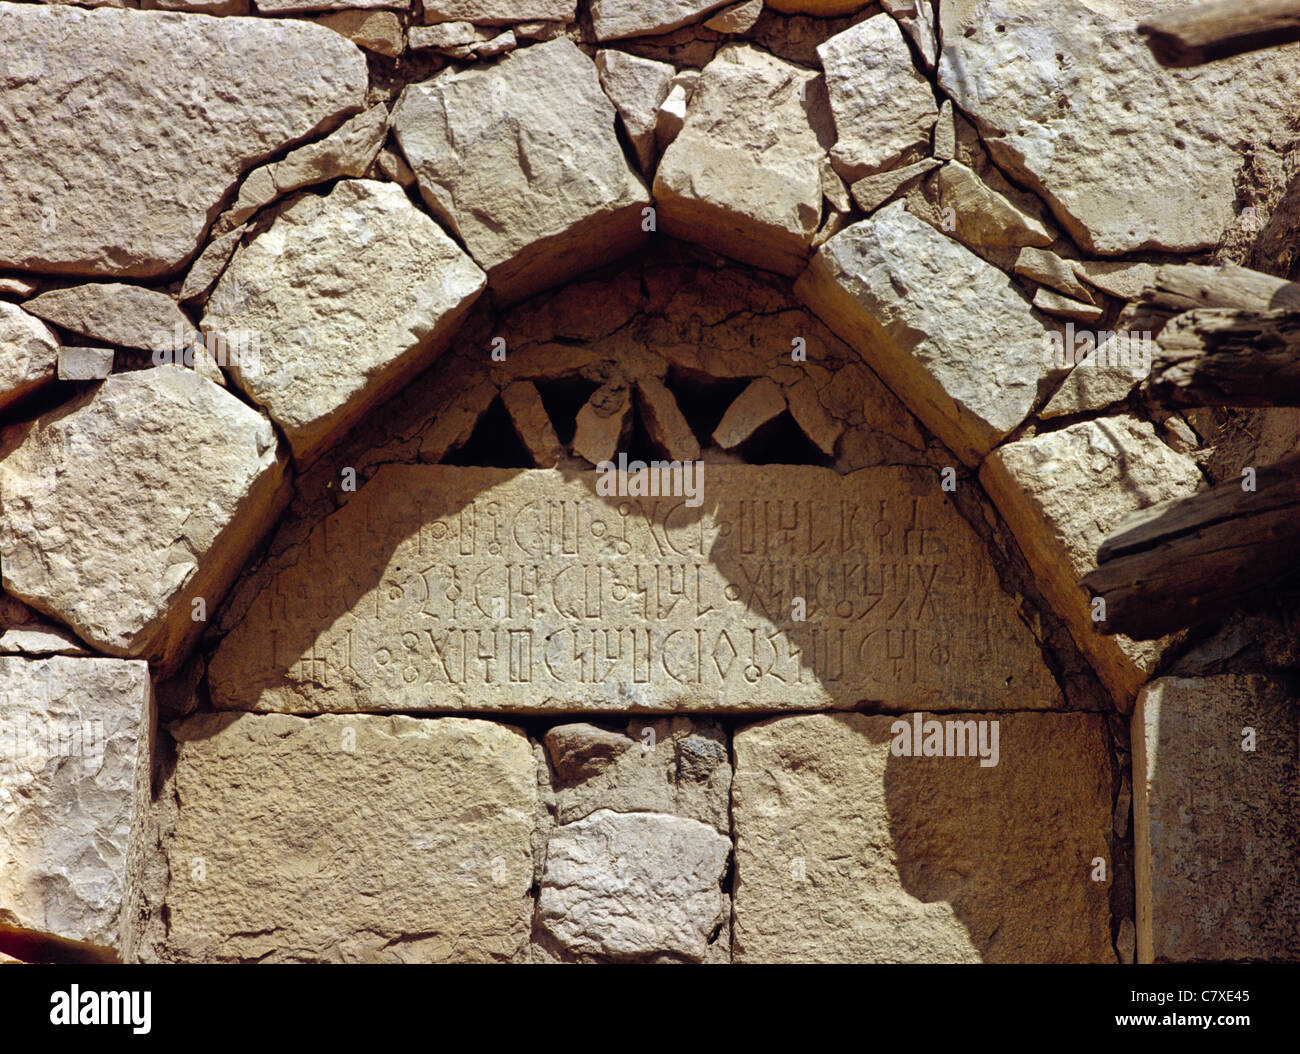 7th century BCE Sabaean wall inscription below a stone arch in the ancient city of Marib, Yemen - Stock Image